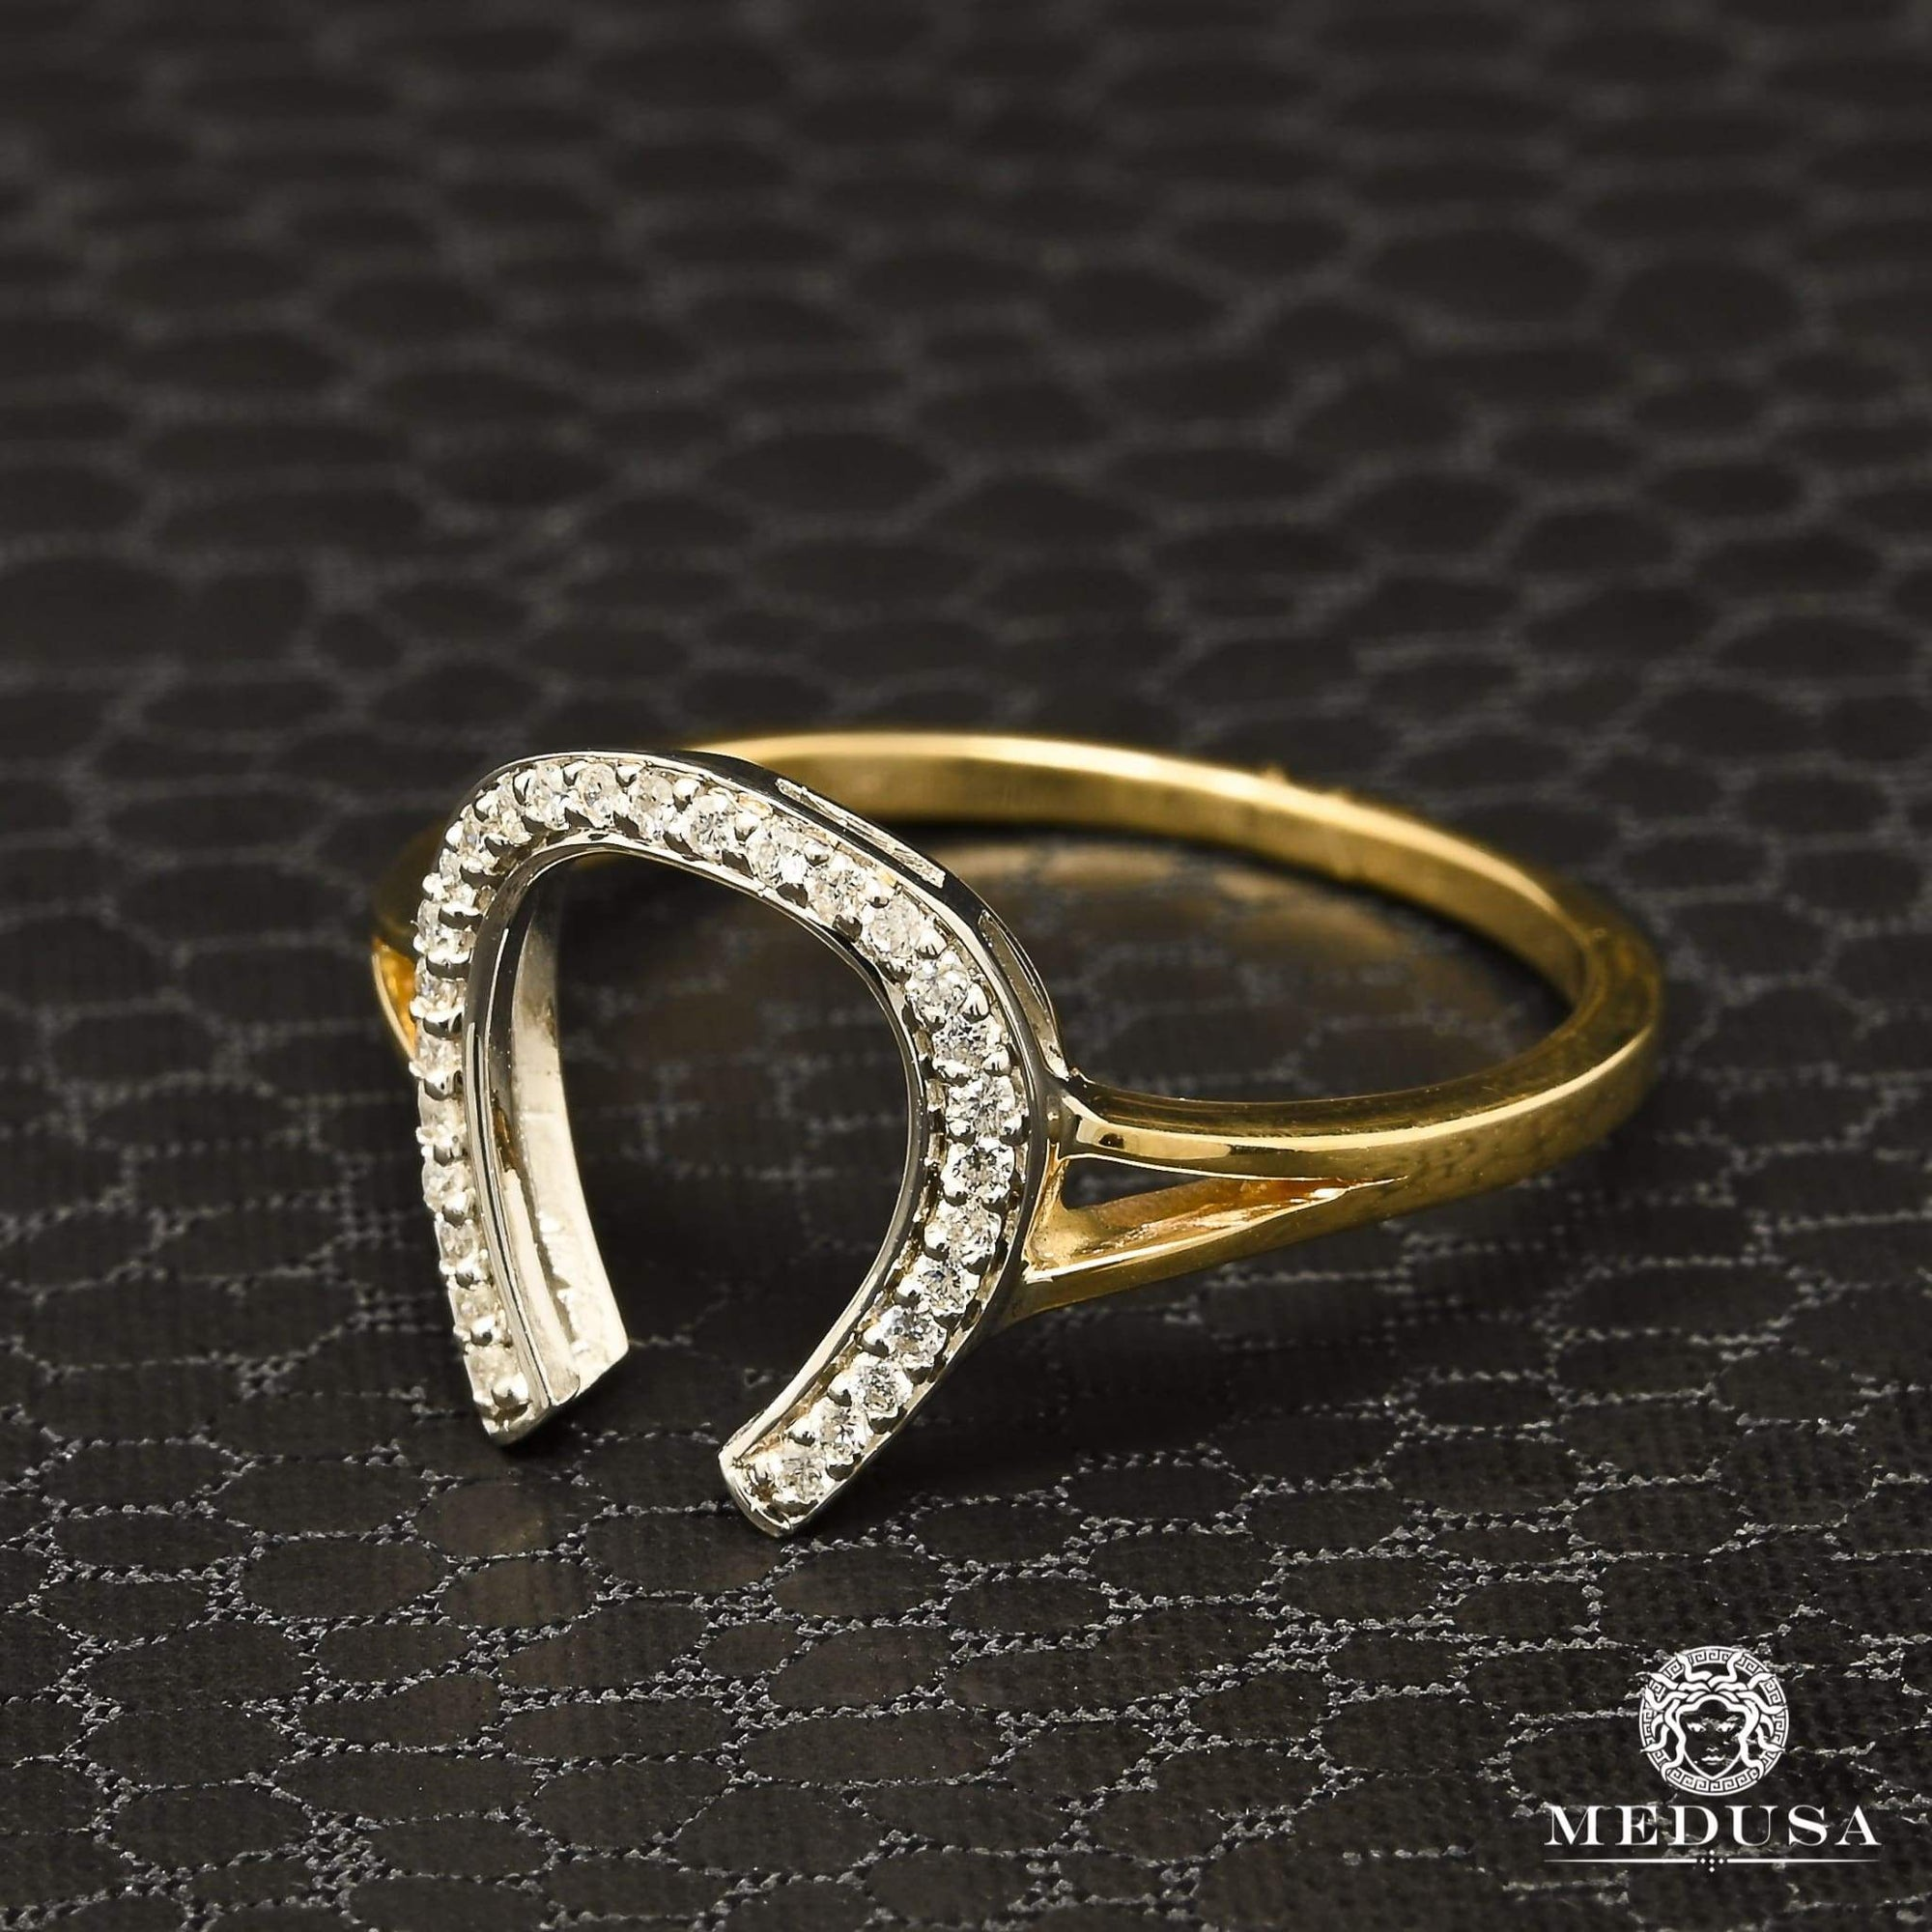 Bague à Diamants en Or 14K | Bague Femme Horse D1 - Diamant 10PT / Or 2 Tons